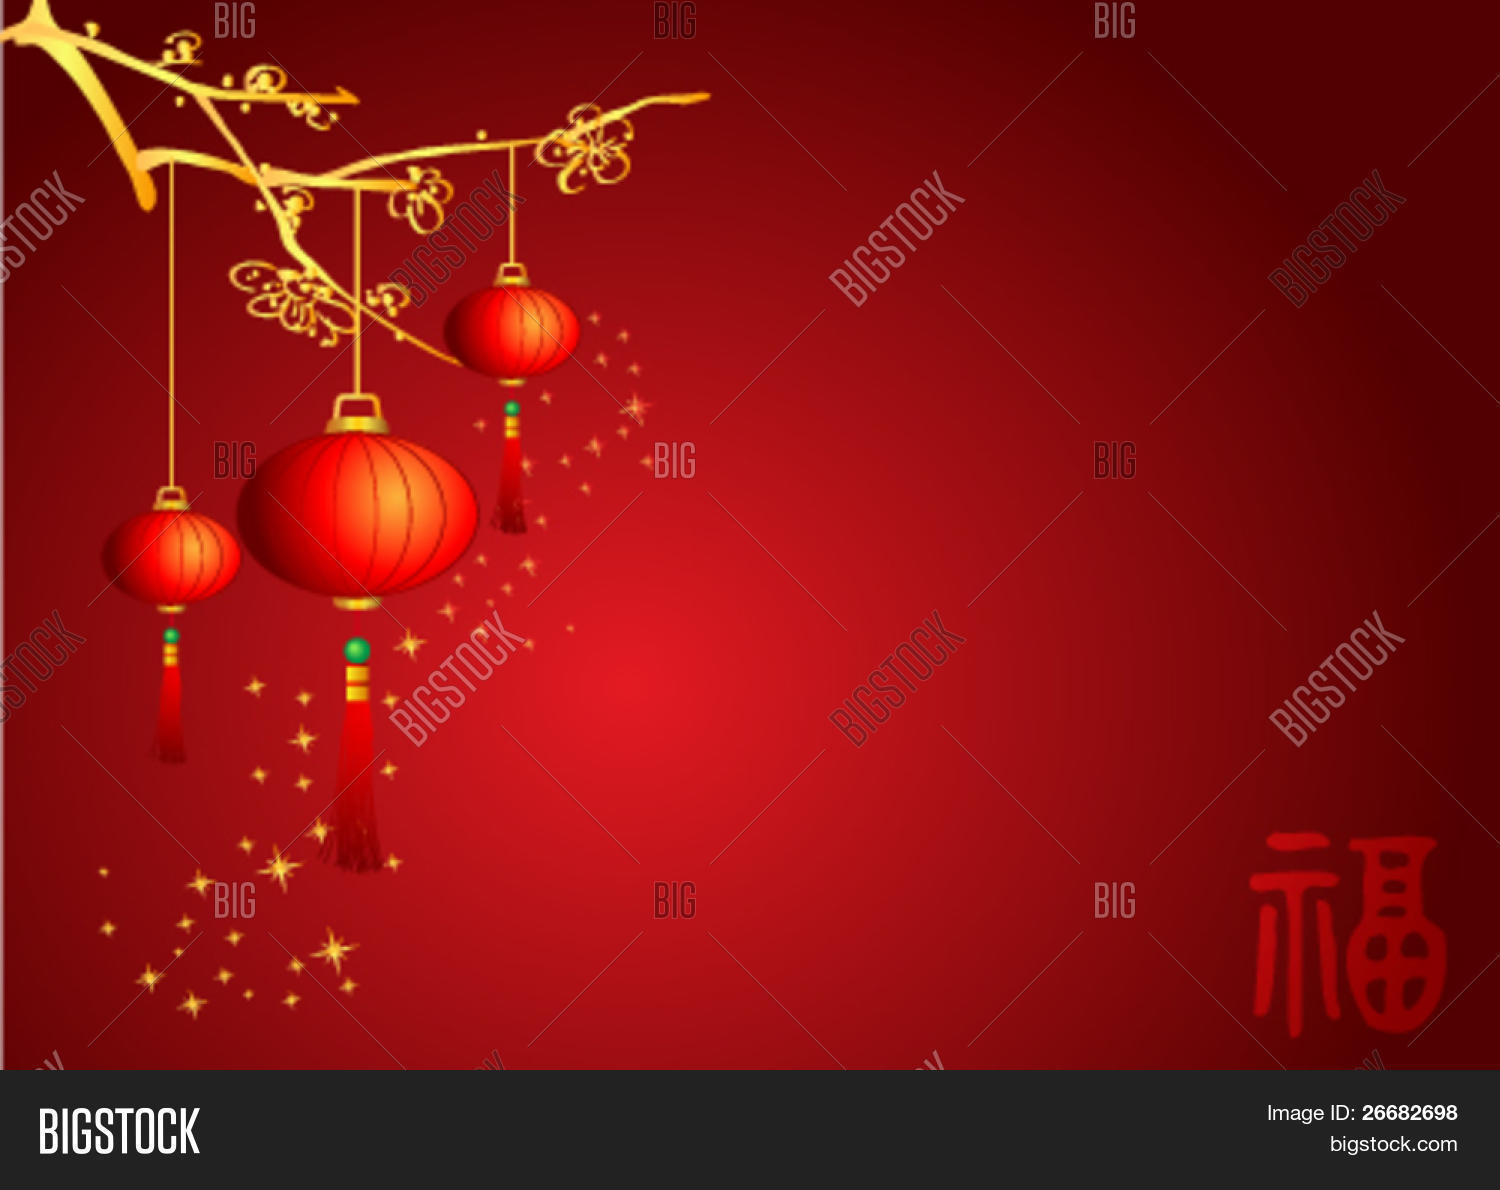 Chinese new year powerpoint template images templates example chinese new year powerpoint template merry christmas and happy chinese new year powerpoint template alramifo images alramifo Image collections